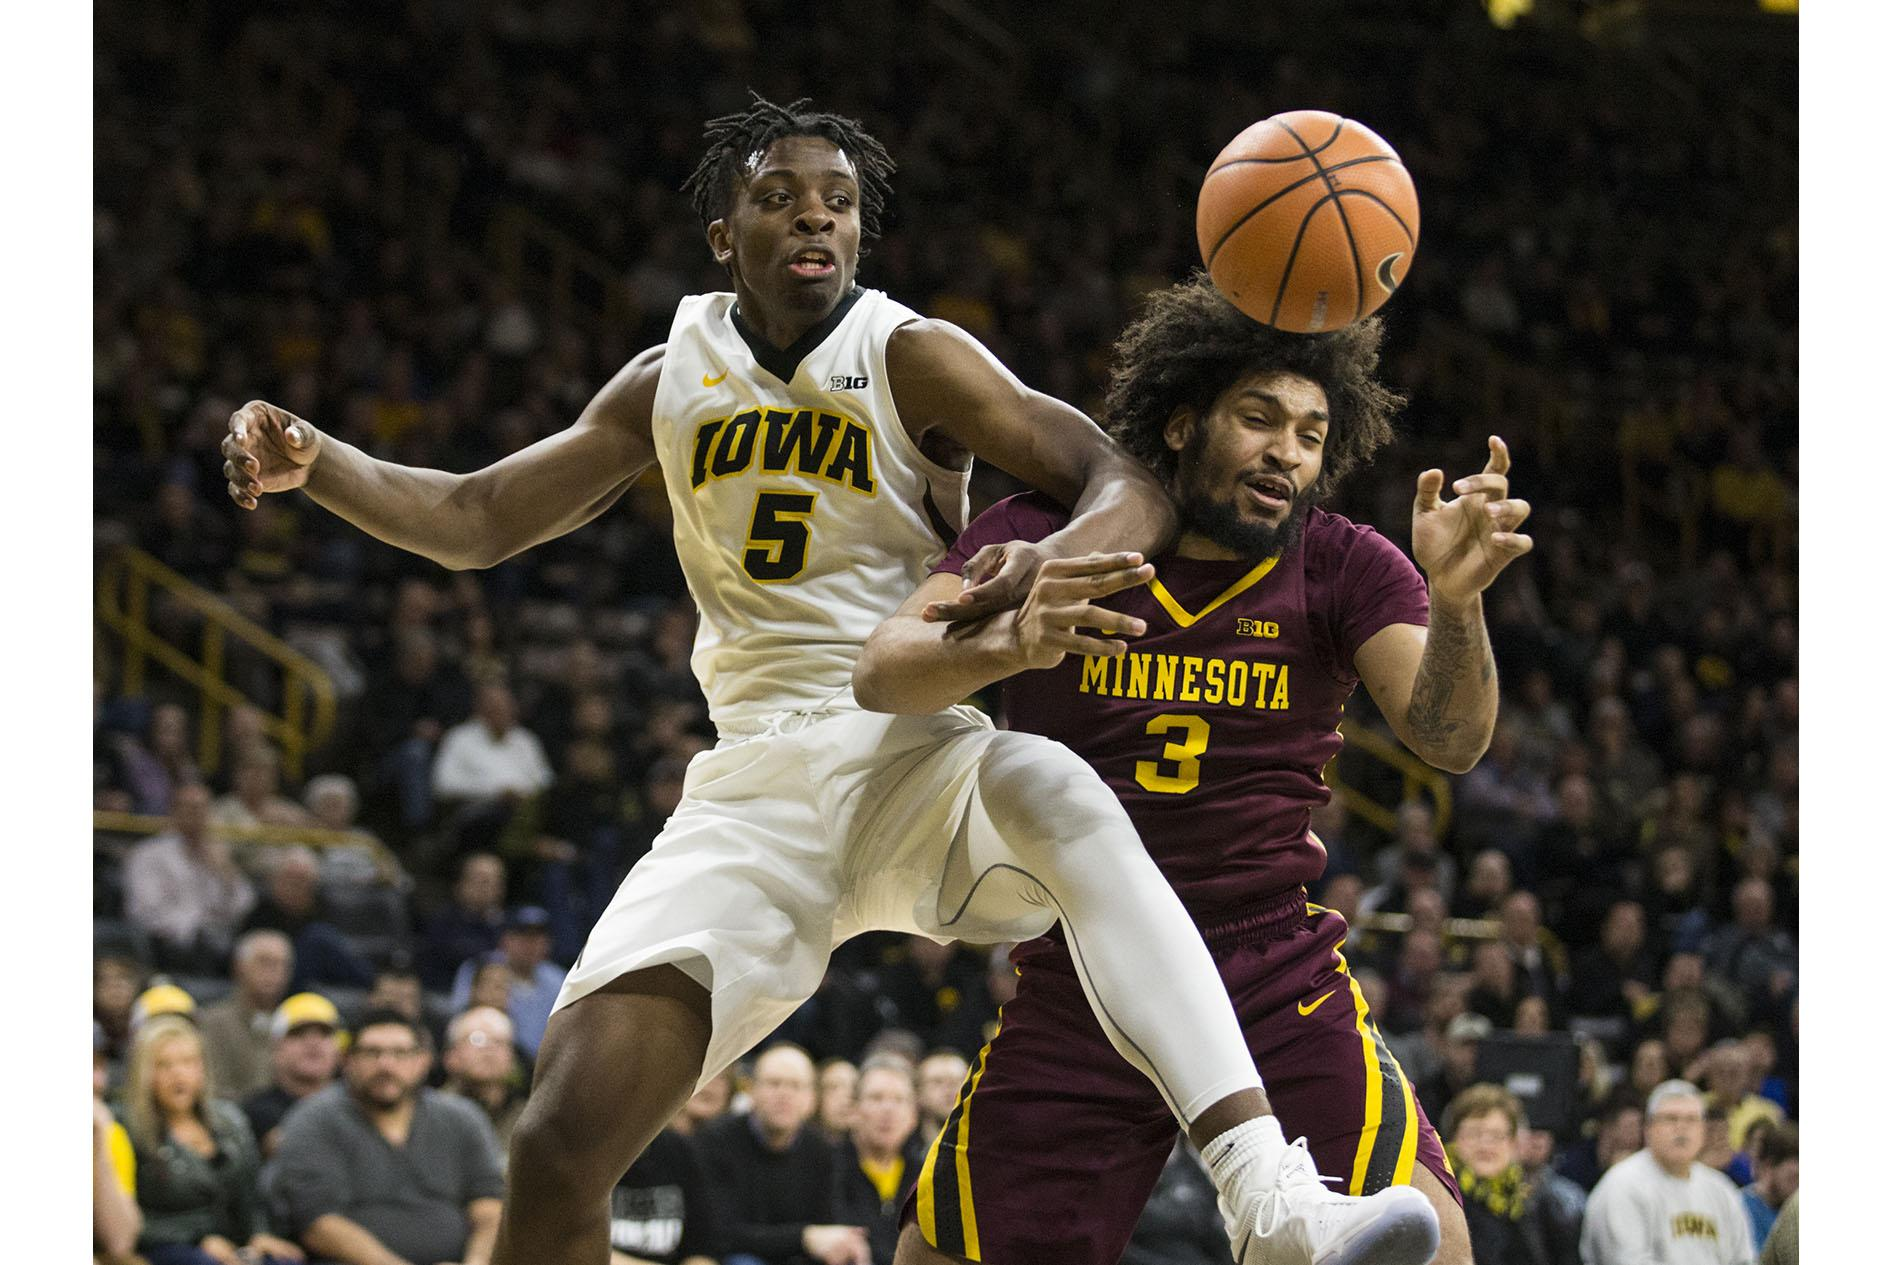 Iowa's Tyler Cook (5) and Minnesota's Jordan Murphy (3) go for a loose ball during the NCAA men's basketball game between Iowa and Minnesota at Carver-Hawkeye Arena on Tuesday, Jan. 30, 2018. The Hawkeyes are going into the game with a Big Ten conference record of 2-8. Iowa went on to defeat the Golden Gophers 94-80. (Ben Allan Smith/The Daily Iowan)